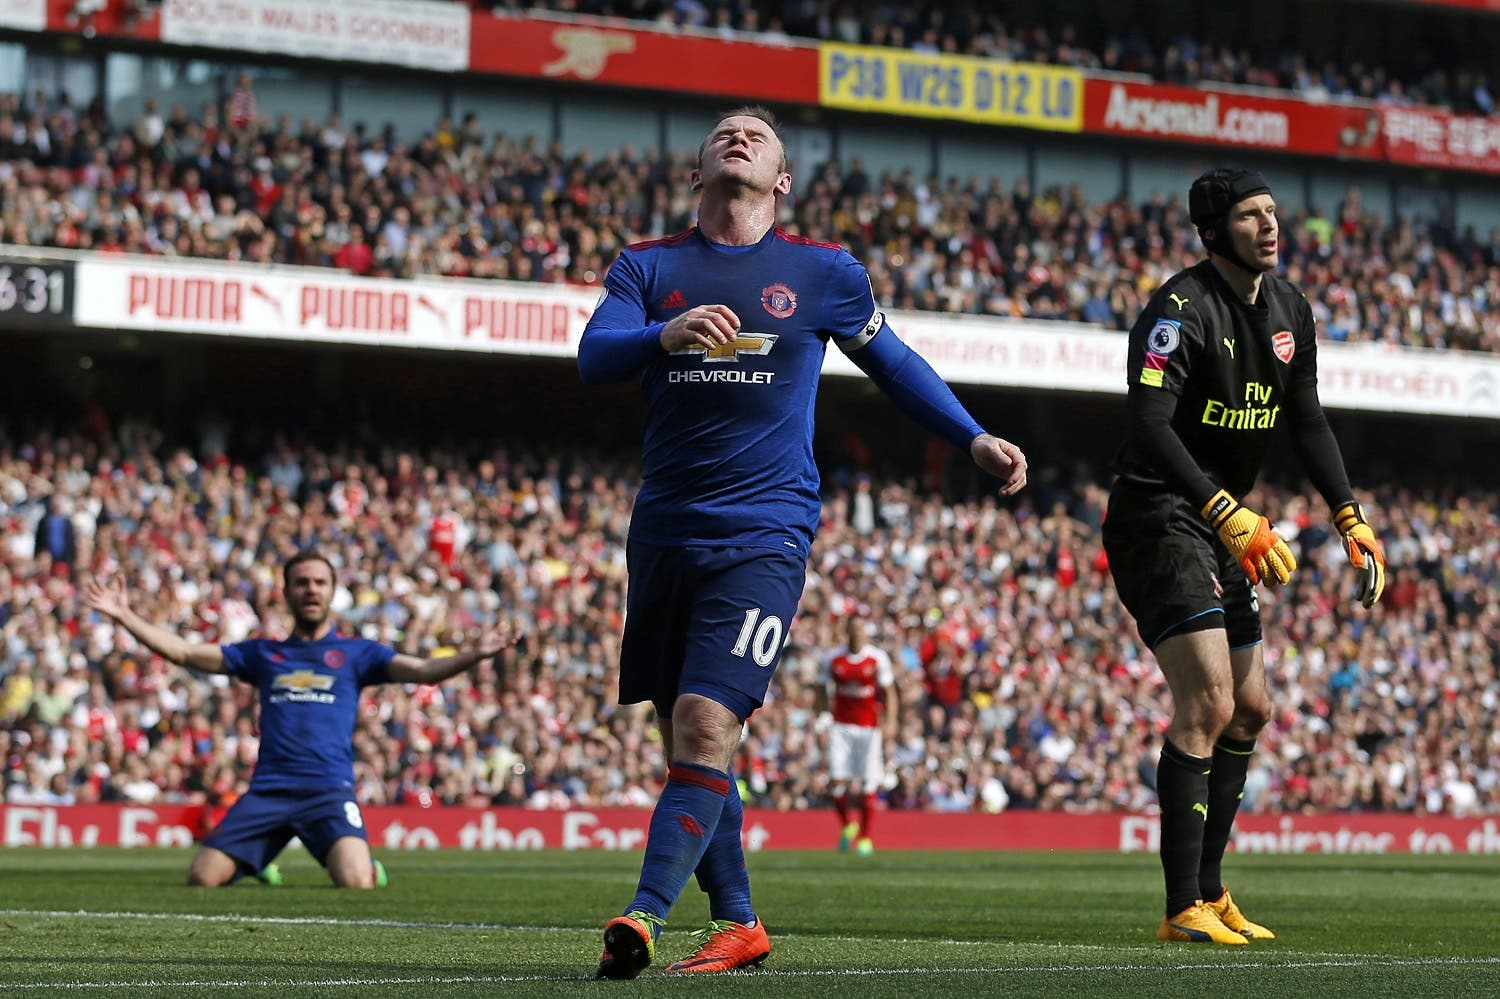 Manchester United's English striker Wayne Rooney (C) reacts after having a shot saved by Arsenal's Czech goalkeeper Petr Cech (R) during the English Premier League football match between Arsenal and Manchester United at the Emirates Stadium in London on May 7, 2017. (AFP)